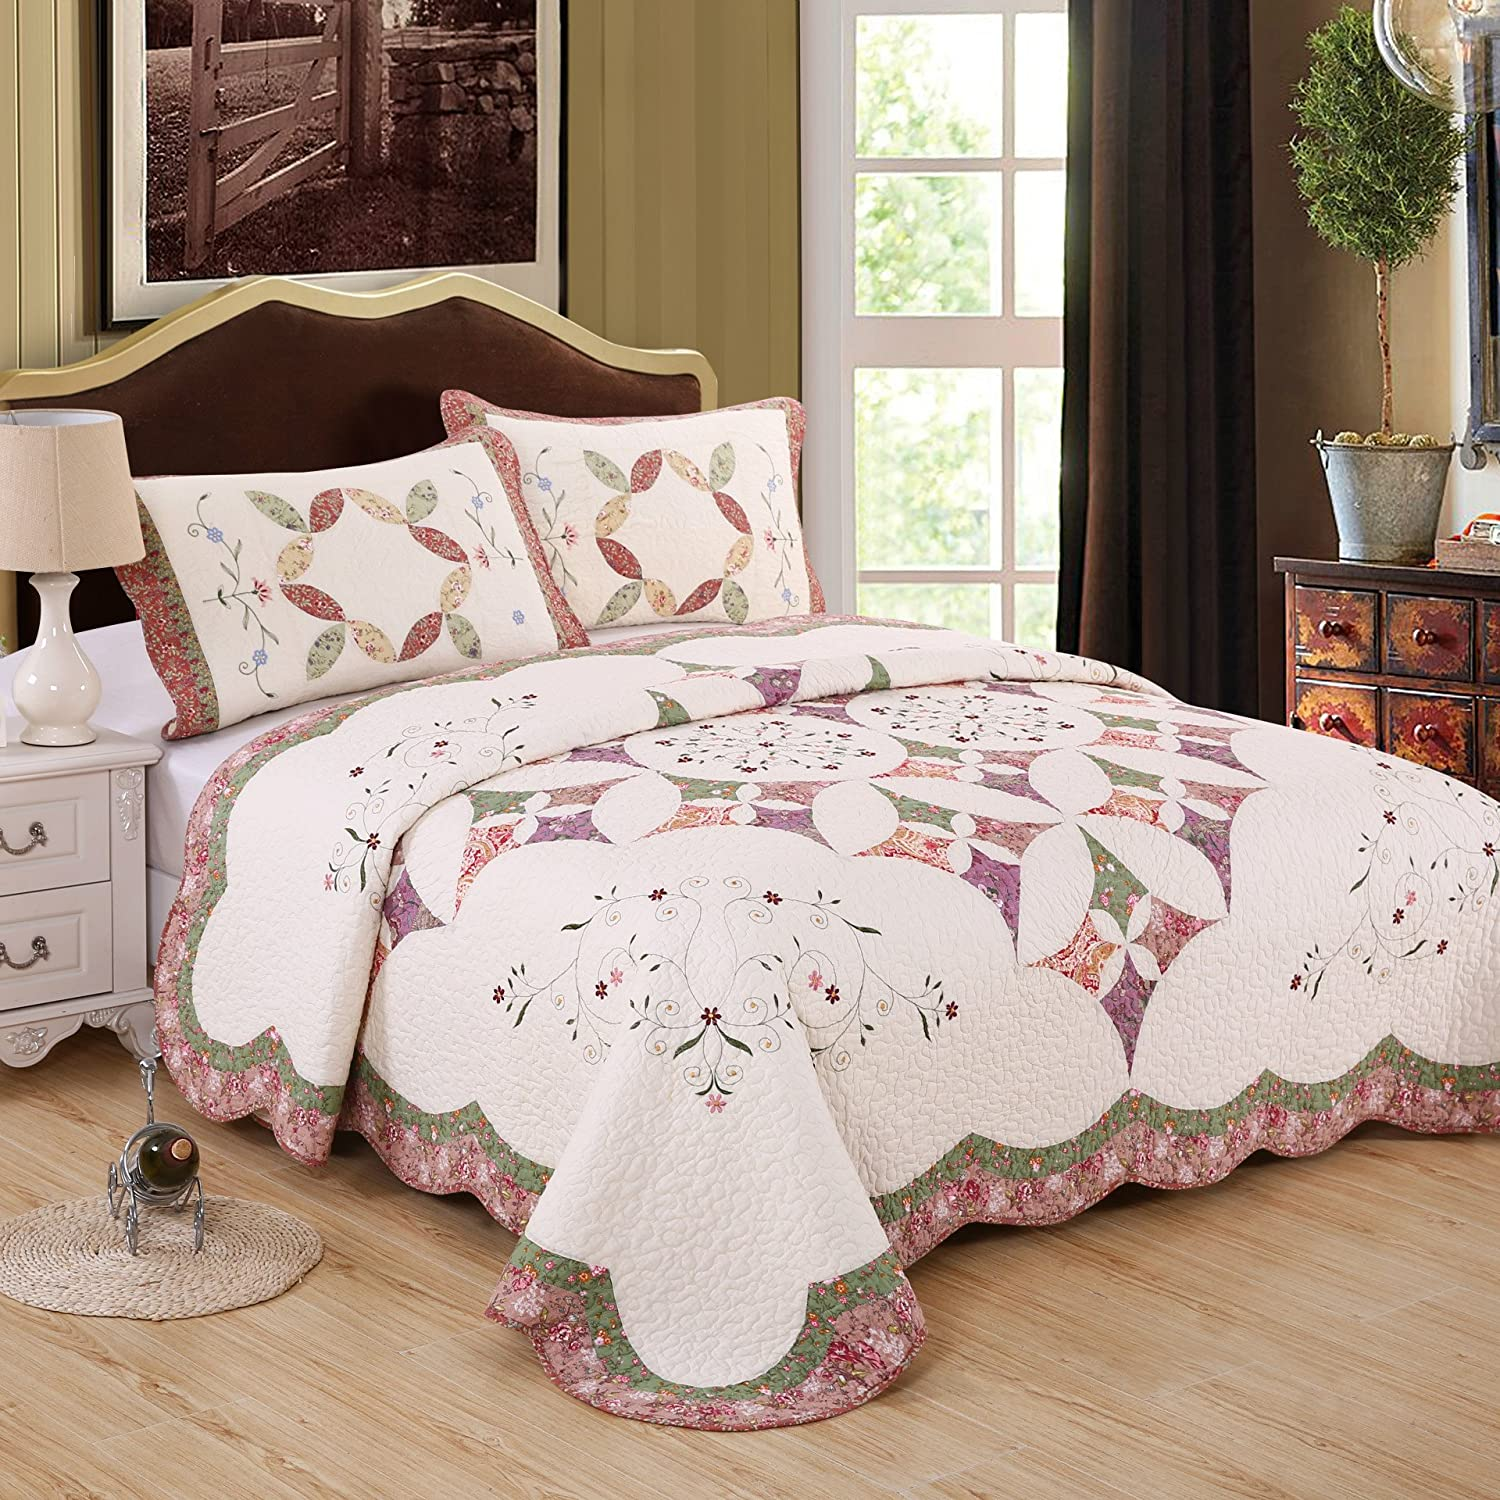 Summer Quilt Linings 3-Piece Real Patchwork Cotton Quilt Set (King) | With 2 Shams Pre-Washed Reversible Machine Washable Lightweight Bedspread Coverlet,Pink,KING SQL